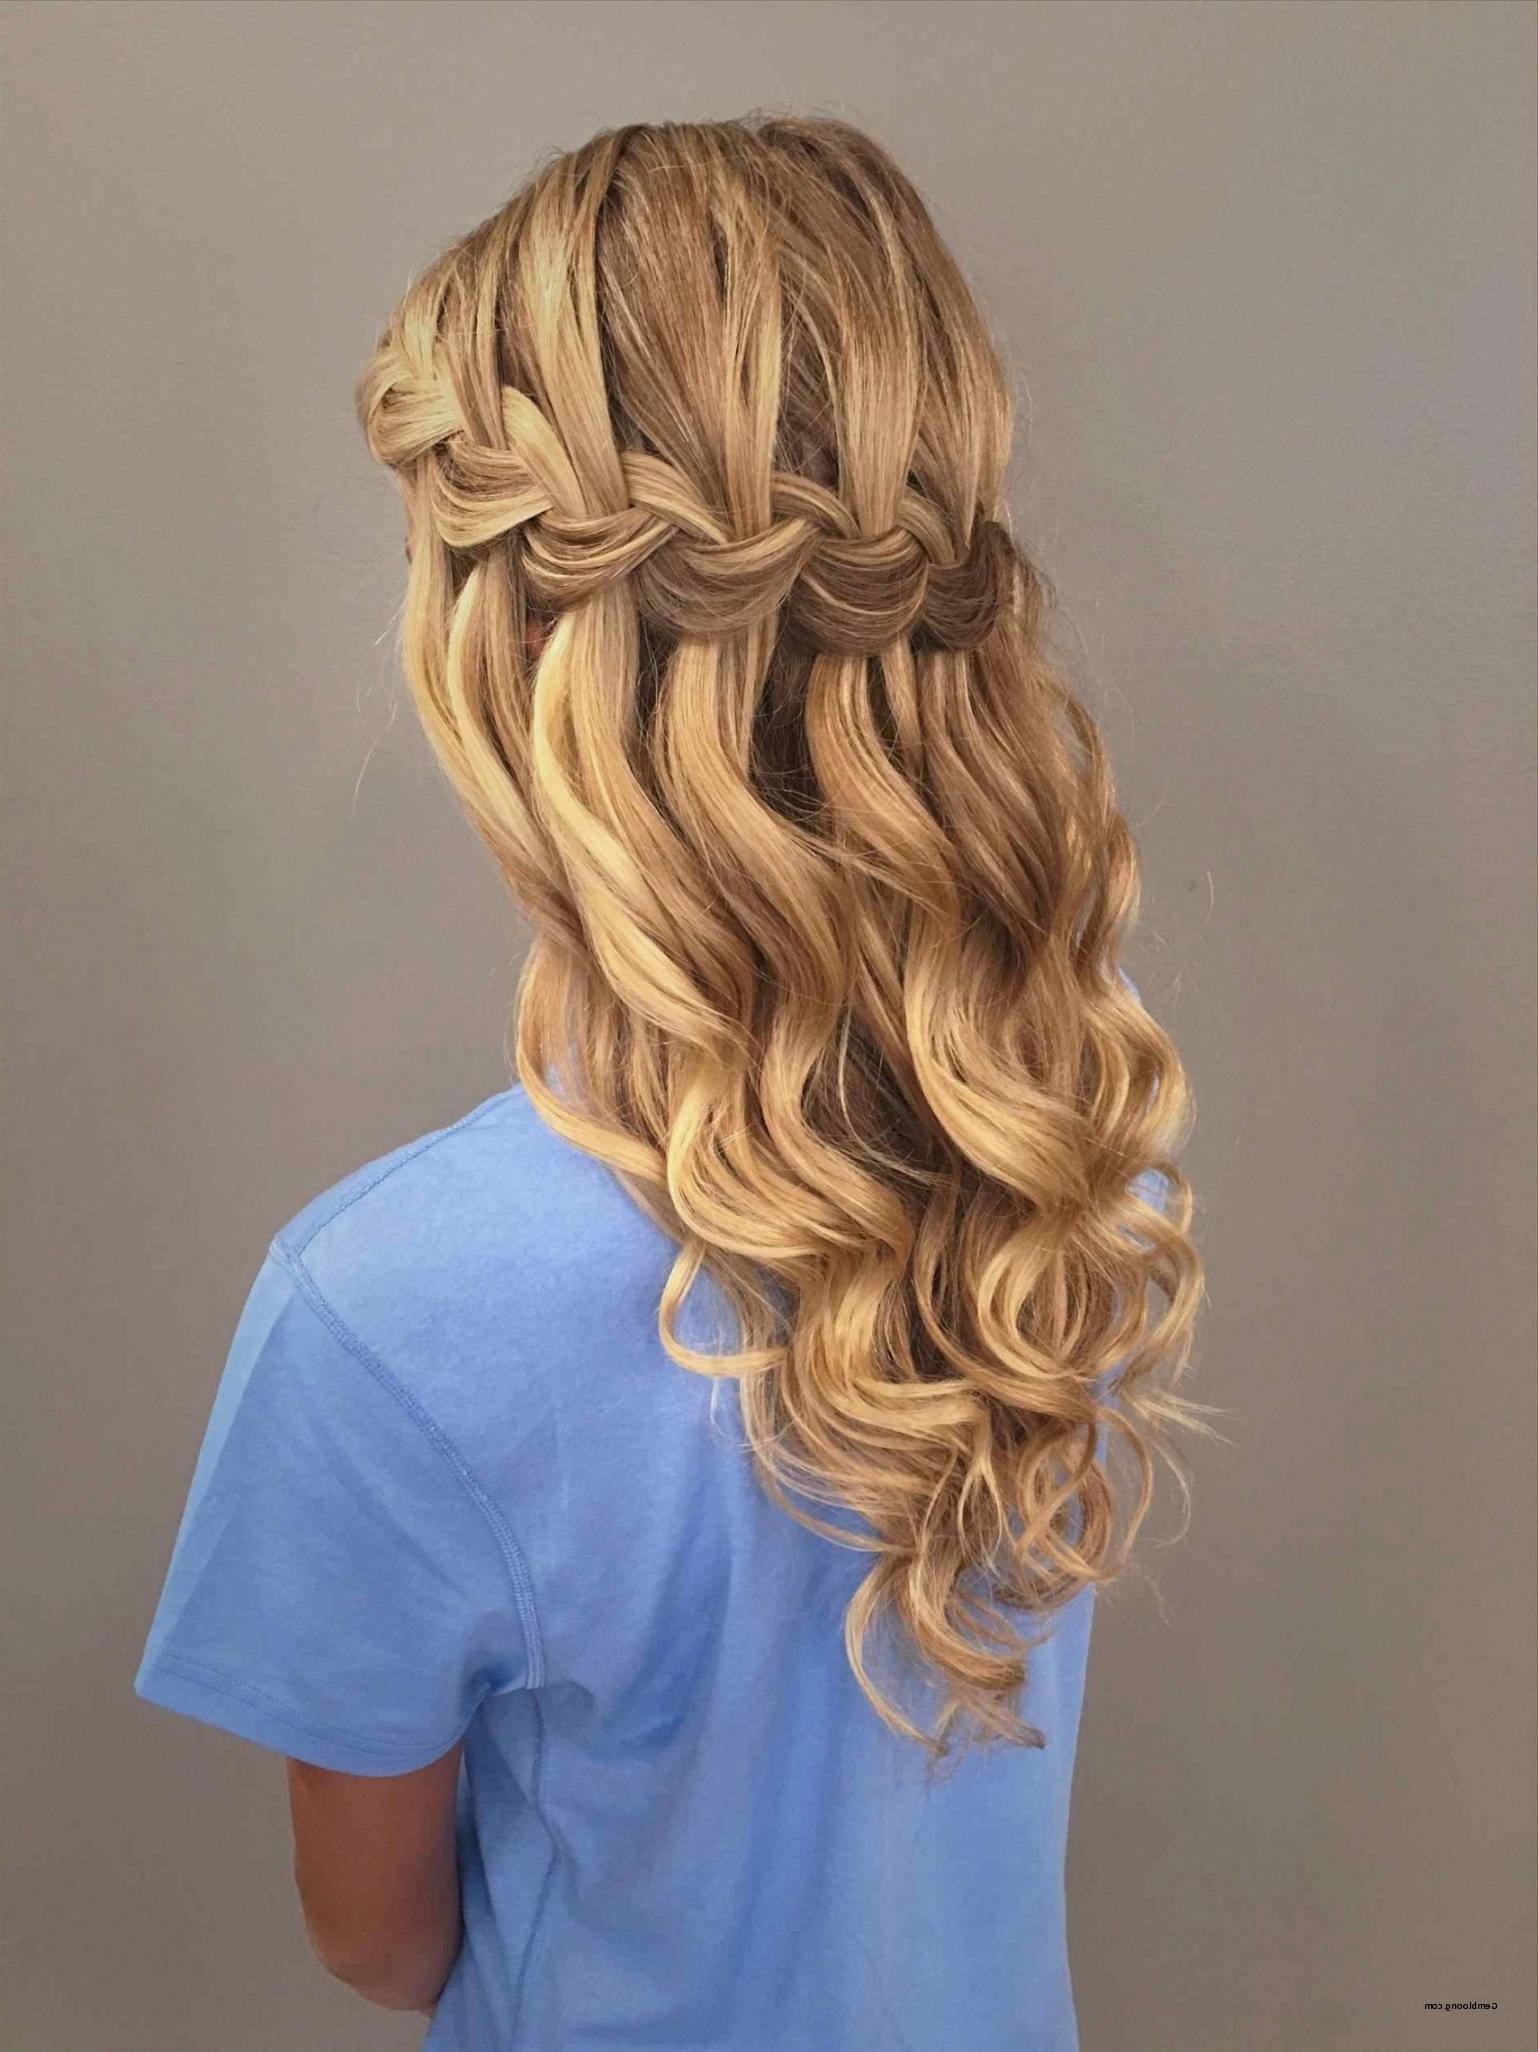 Wavy Hairstyles With Braid For Prom Fresh Curly Hairstyles Awesome With Most Current Wavy And Braided Hairstyles (View 18 of 20)